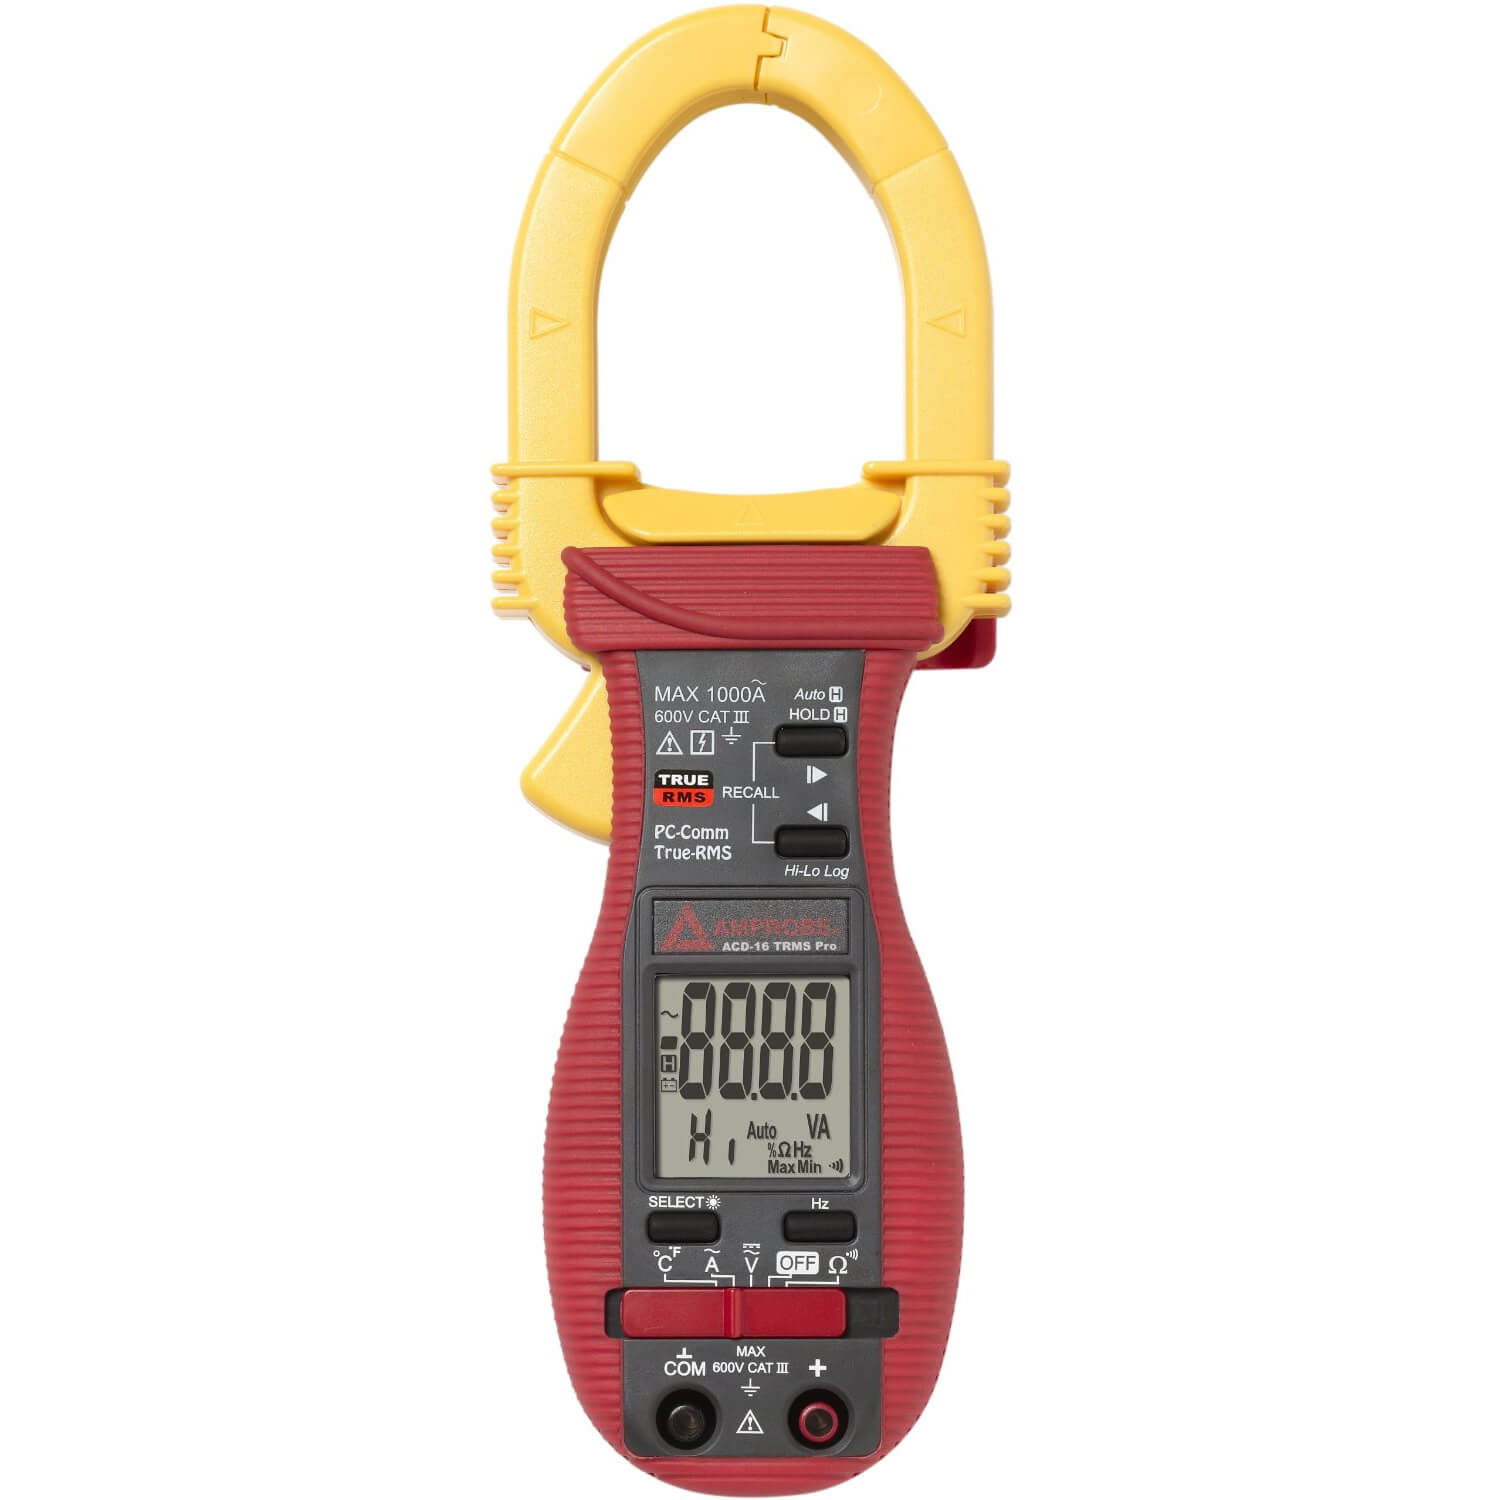 Amprobe ACD-16 TRMS Pro Clamp Multimeter with Datalogging